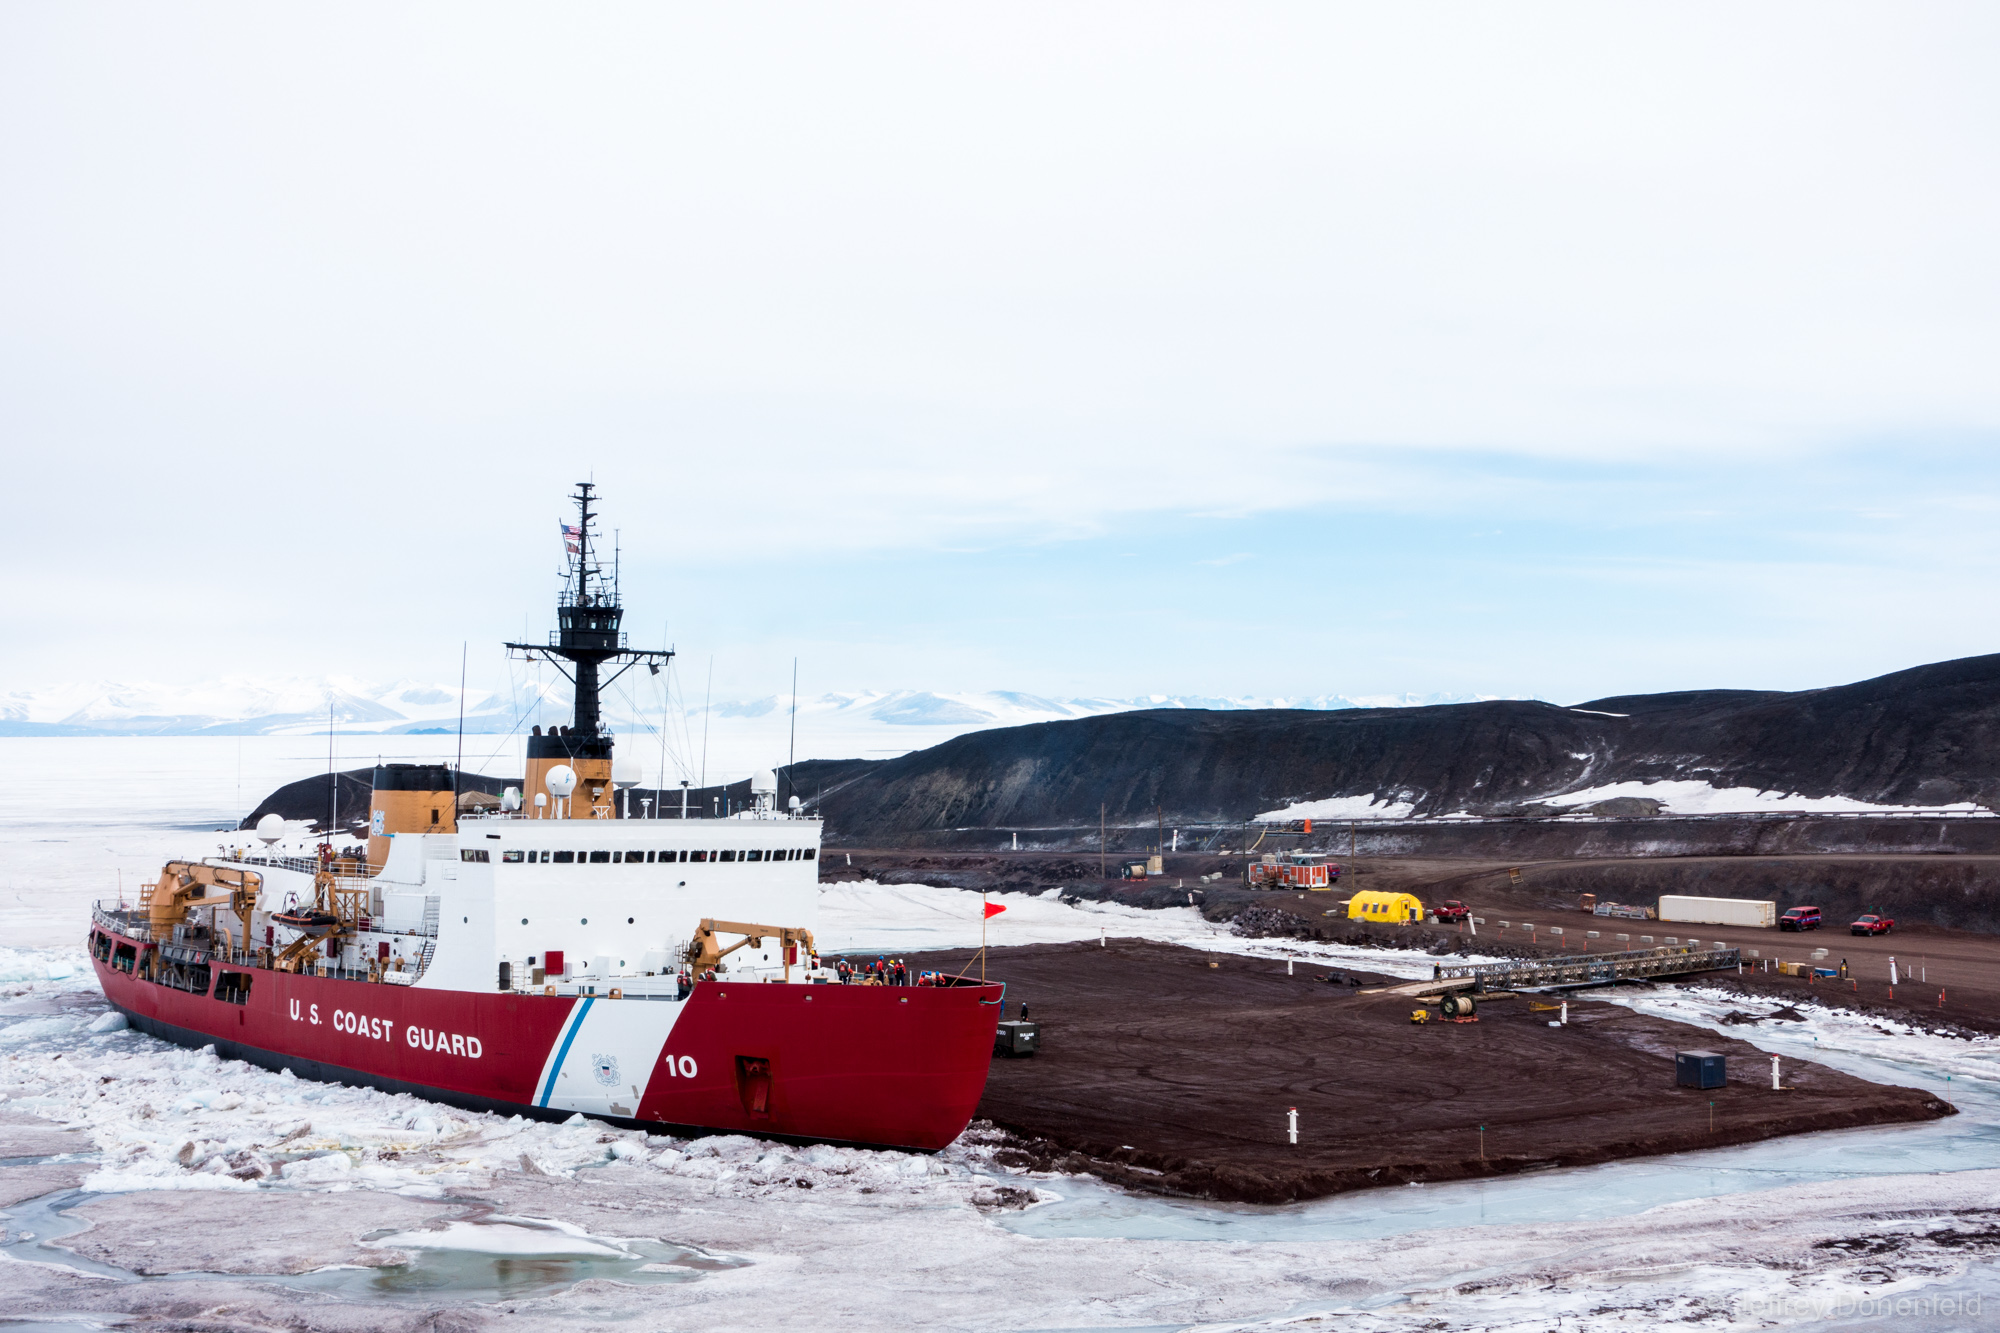 """The US Coast Guard Cutter """"Polar Star"""", the world's most powerful non-nuclear icebreaker, in port at McMurdo Station, Antarctica."""